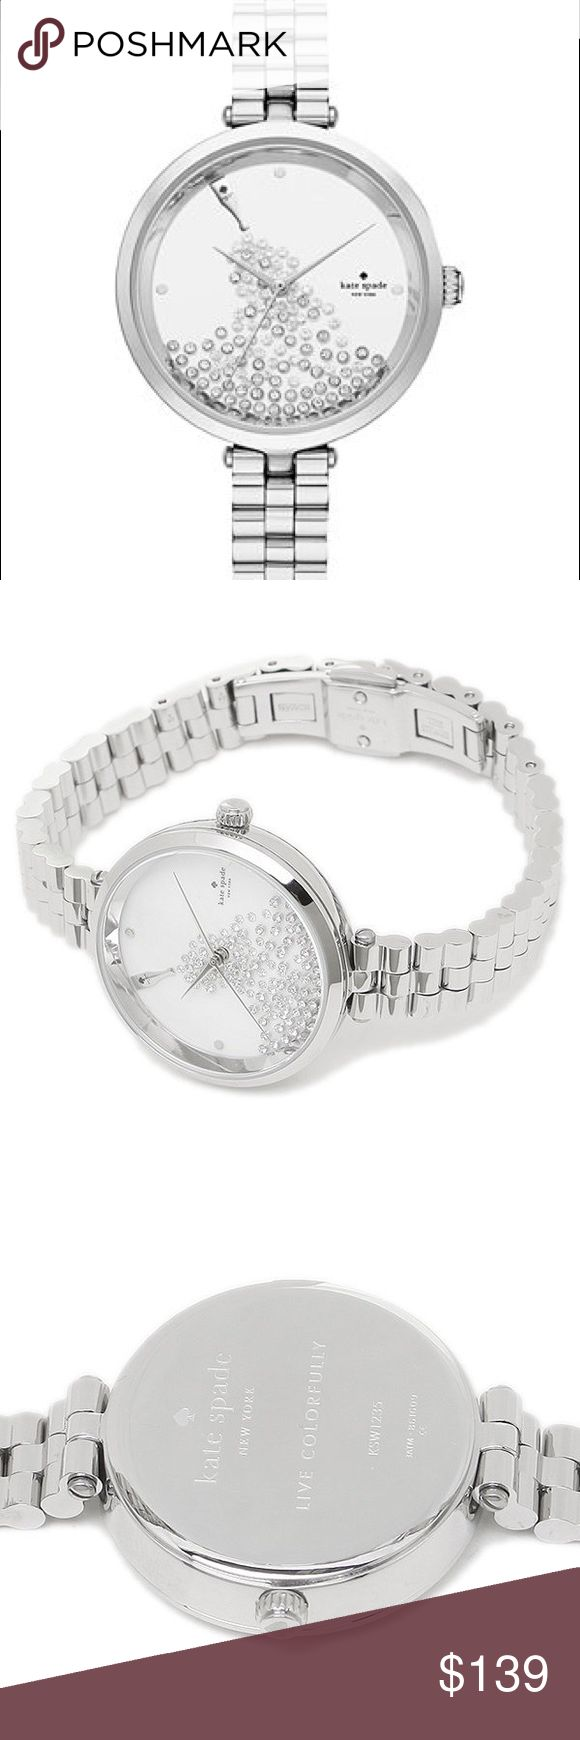 Kate Spade Holland White Crystal Dial Ladies Watch New in box without original tags. Stainless steel case with a stainless steel bracelet. Fixed silver-tone bezel. White, crystal embellished dial with silver-tone hands.Scratch resistant mineral crystal. Pull / push crown.Case size: 34 mm. Case thickness: 8 mm.Band width: 10 mm. Band length: 7 inches. Jewelry clasp. Water resistant at 30 meters / . Dress watch style. Kate Spade Holland White Crystal Dial Ladies Watch KSW1235. kate spade…